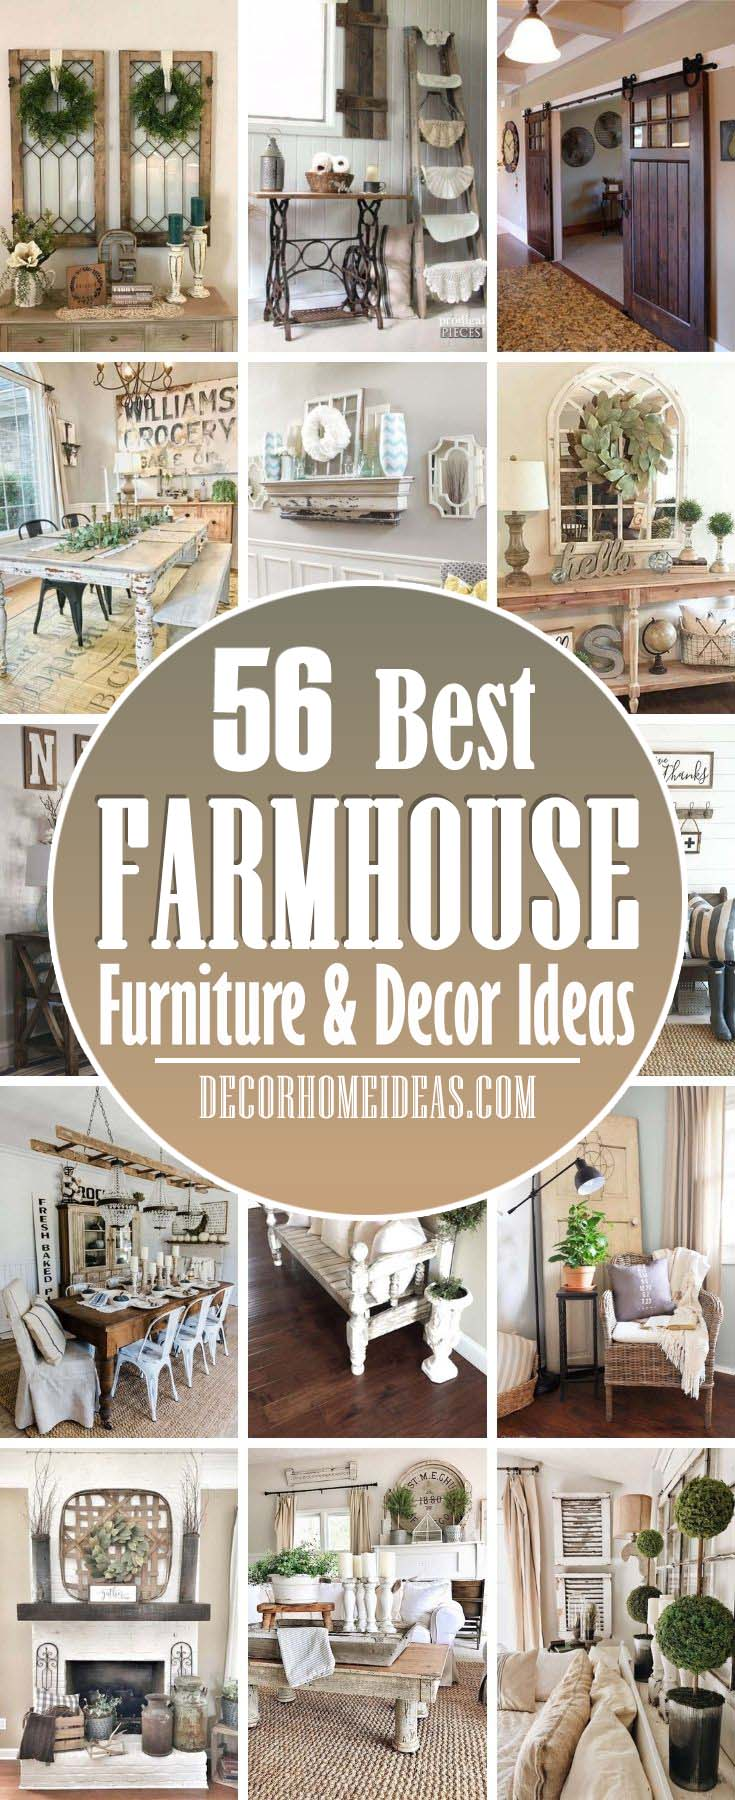 Best Farmhouse Furniture And Decor Ideas. Take your love of farmhouse style to the next level with decorating ideas for every room in your house. From farmhouse kitchens to bedroom decorating ideas and even rustic bathrooms. #decorhomeideas